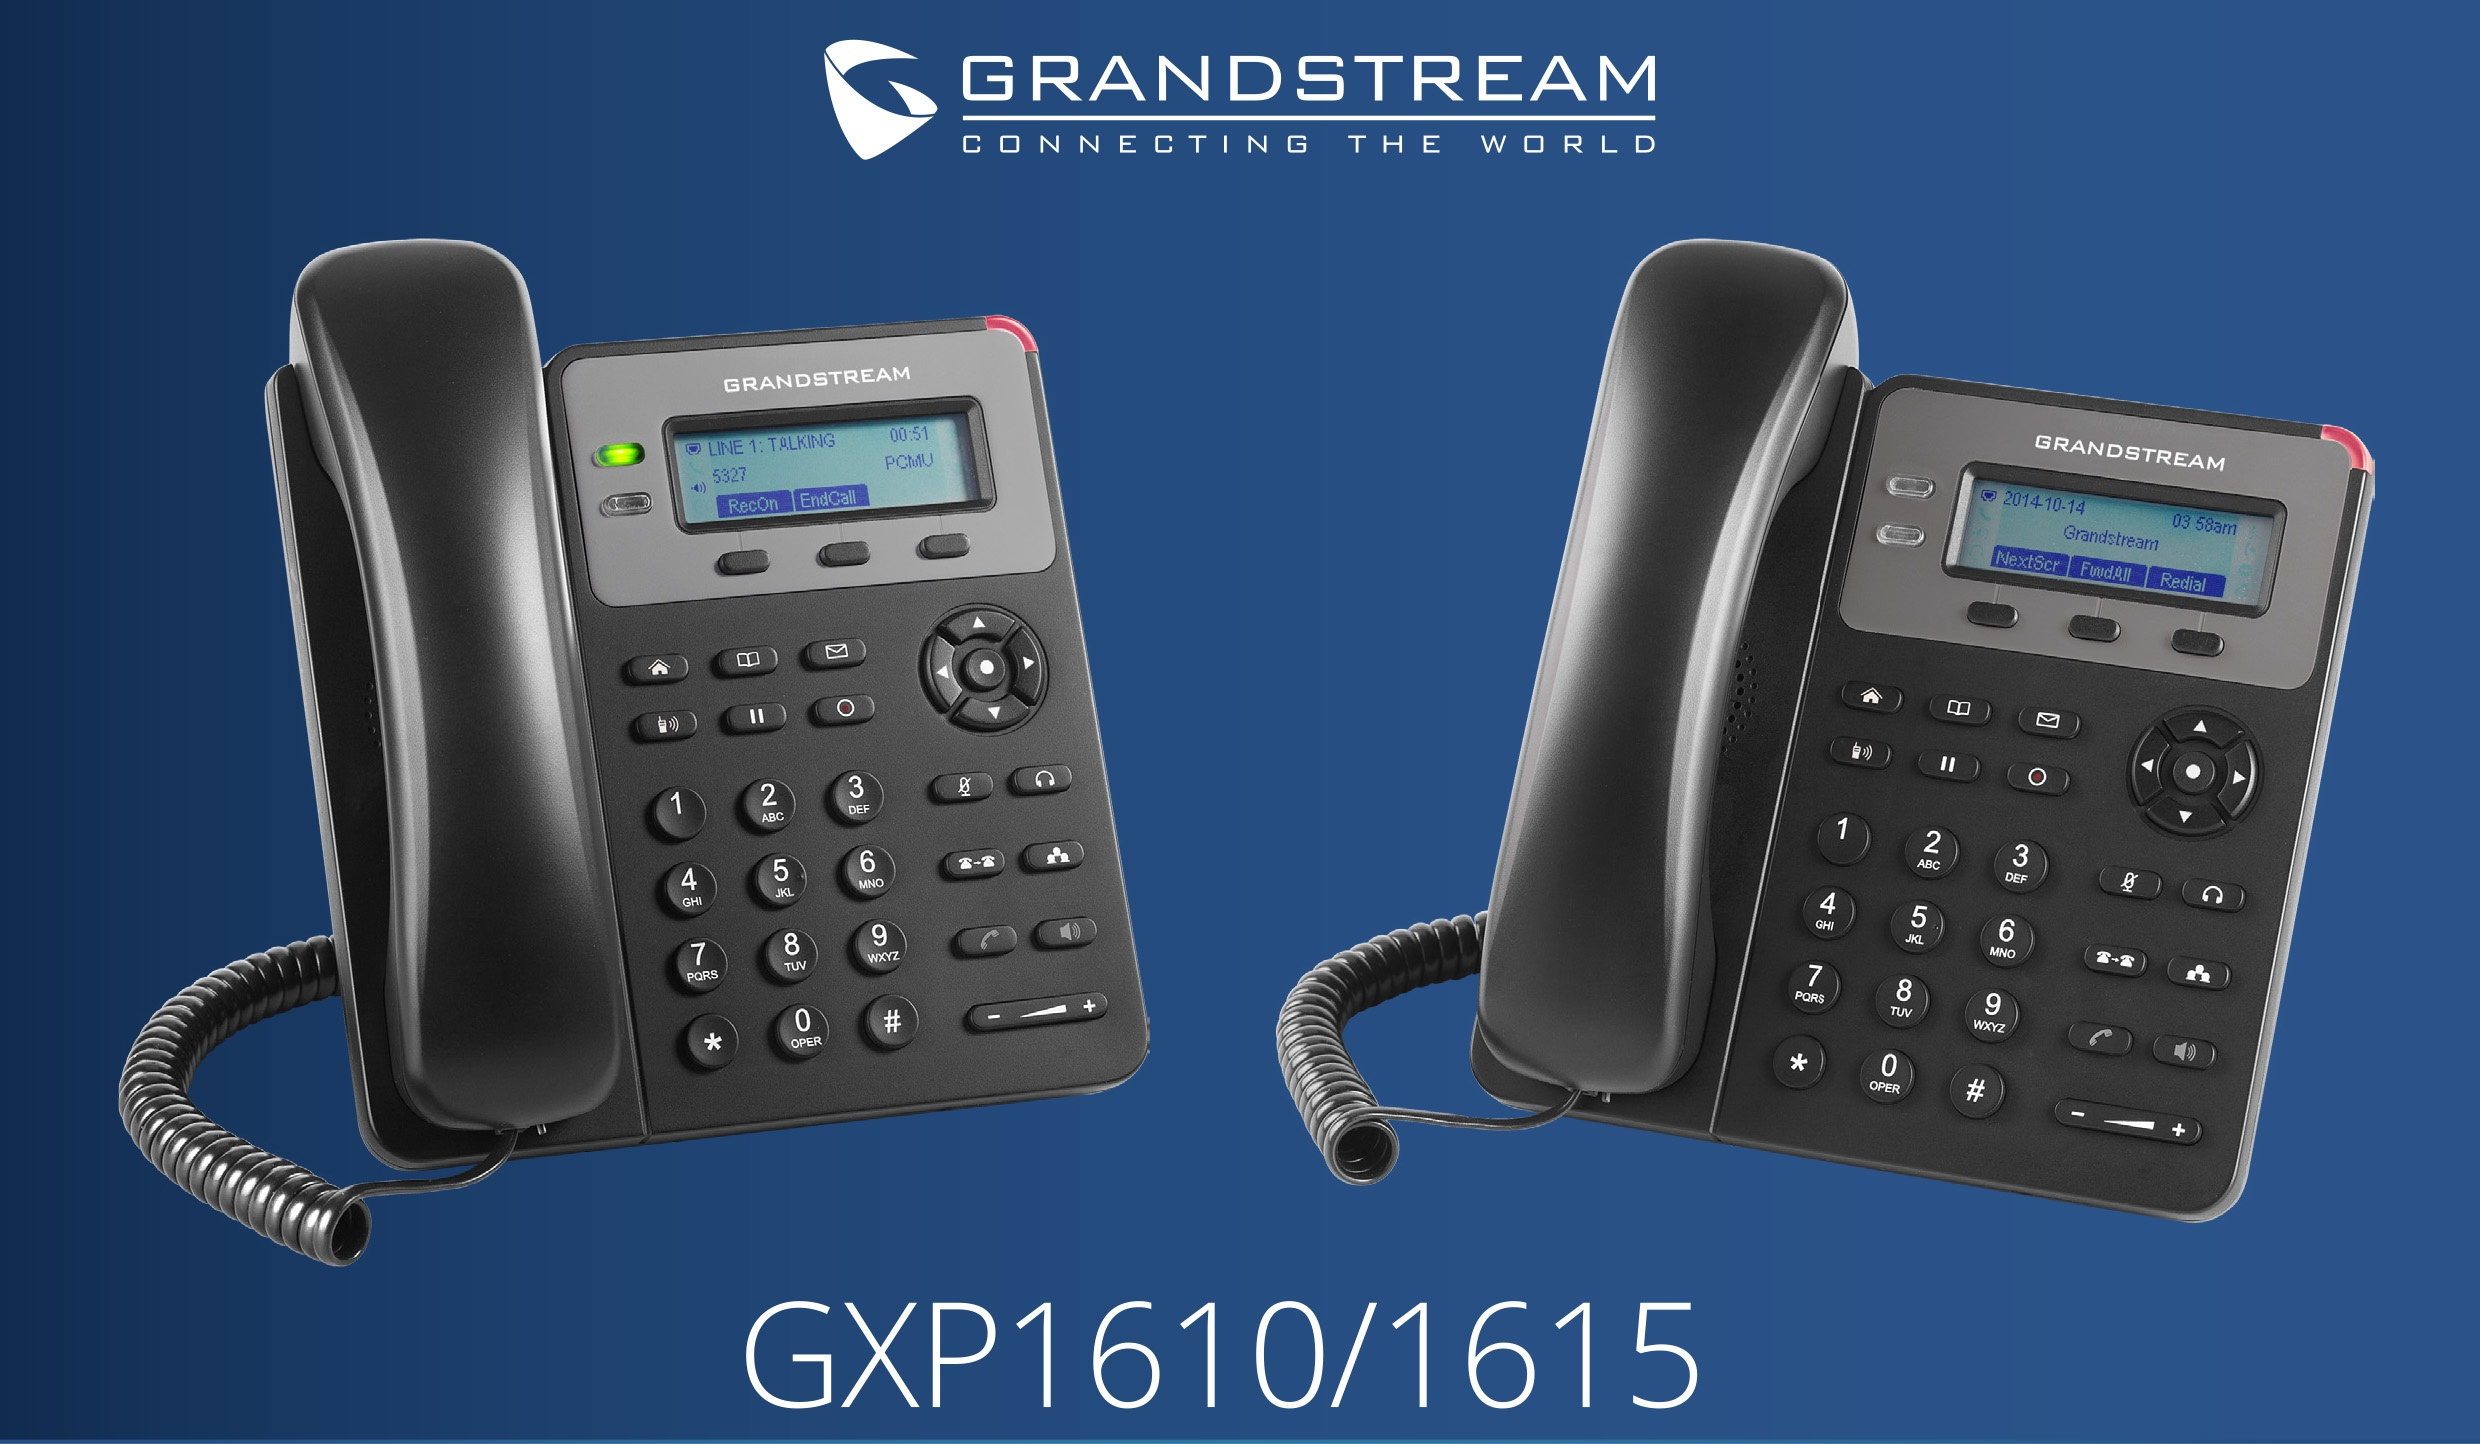 Grandstream GXP1610 and GXP1615 IP phones